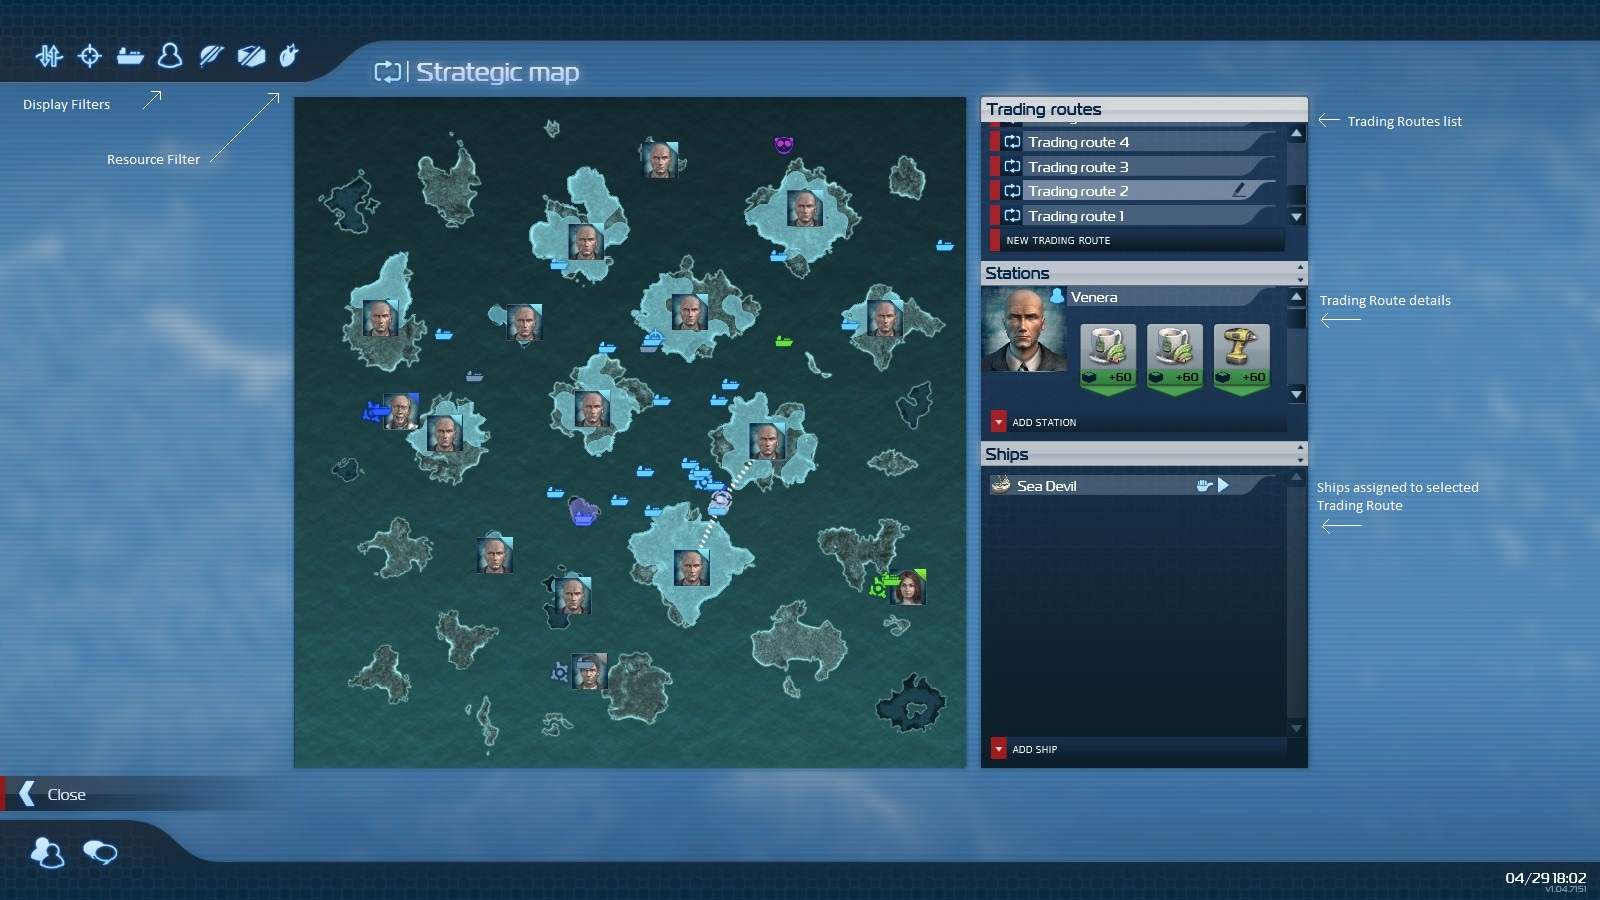 Image strategic mapg anno 2070 wiki fandom powered by wikia strategic mapg gumiabroncs